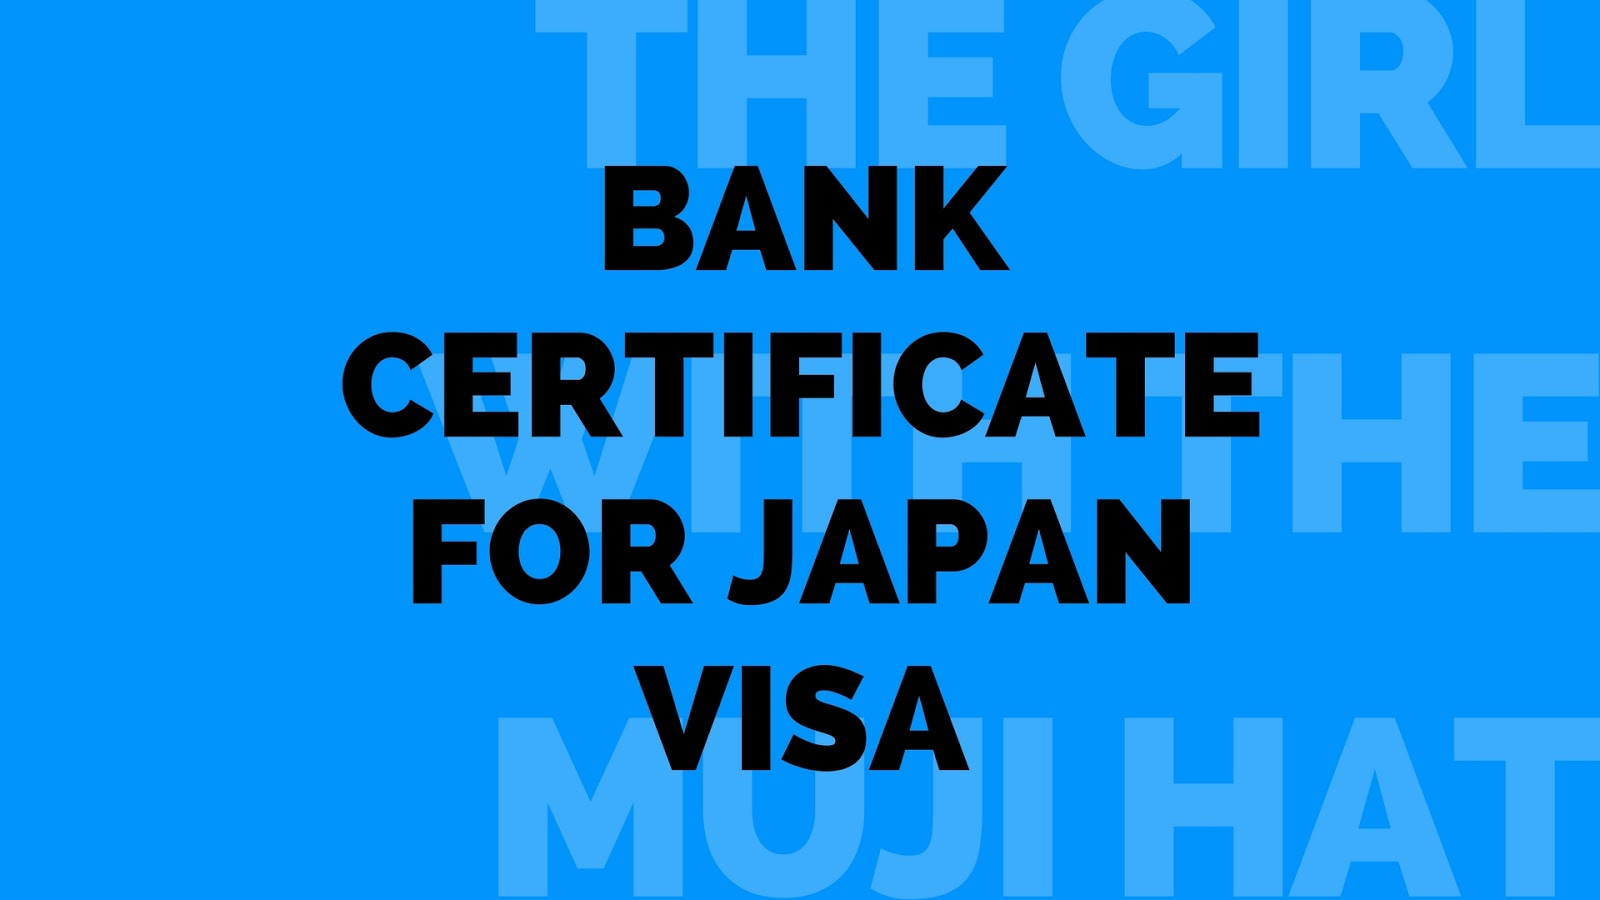 Bank certificate for japan visa the girl with the muji hat bank2bcertificate2bfor2bjapan2bvisa2b252812529 yadclub Image collections